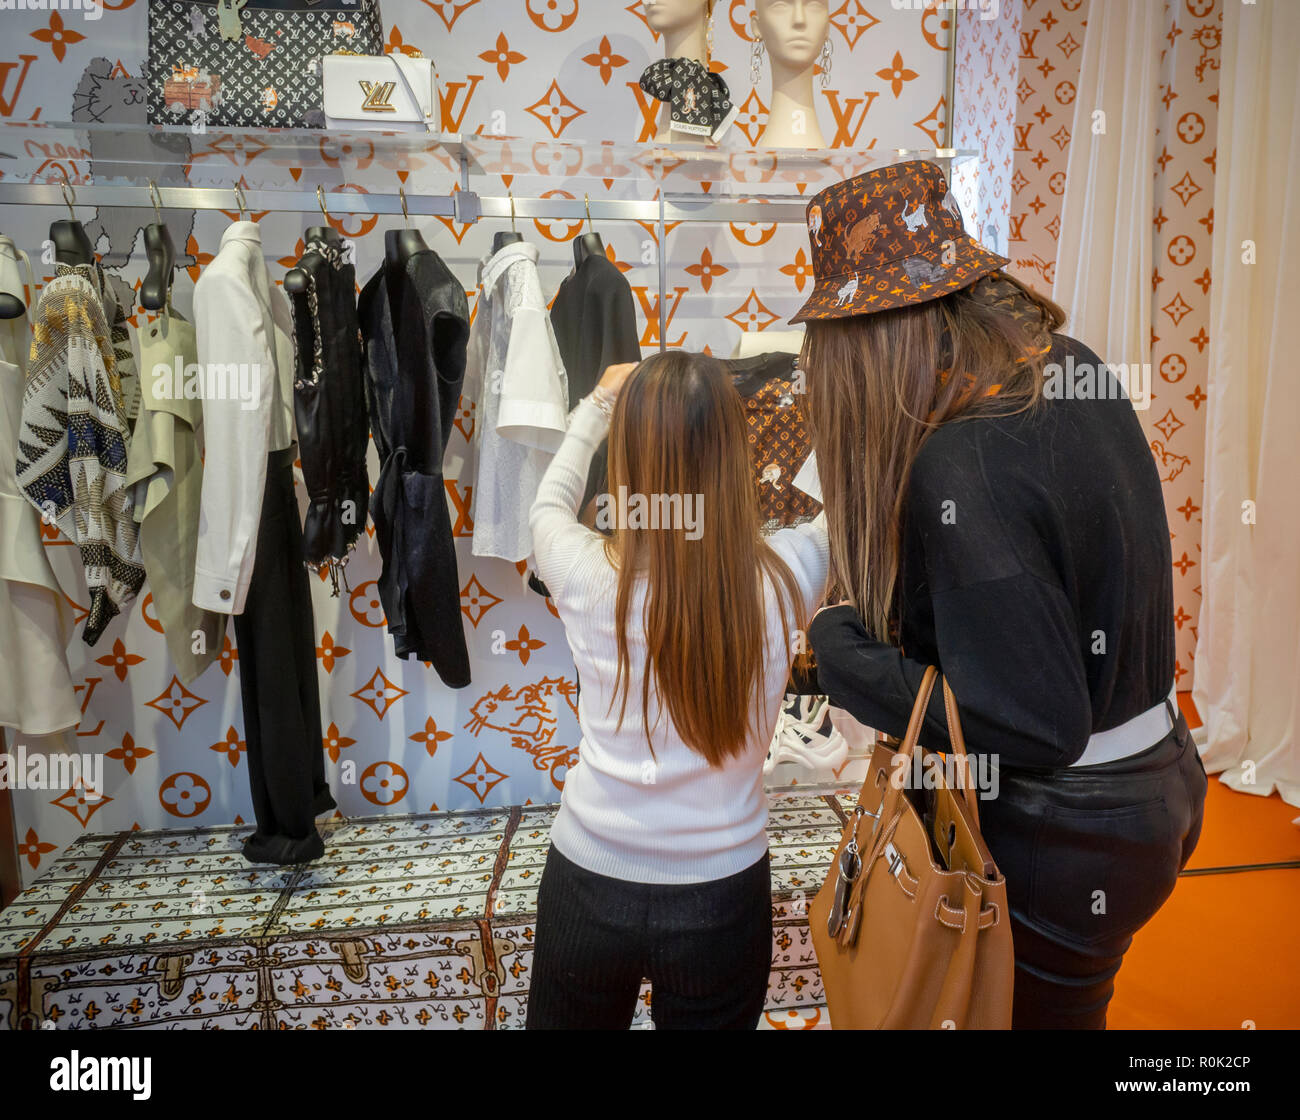 Louis Vuitton Lvmh Luxury Clothing Store Stock Photos Louis